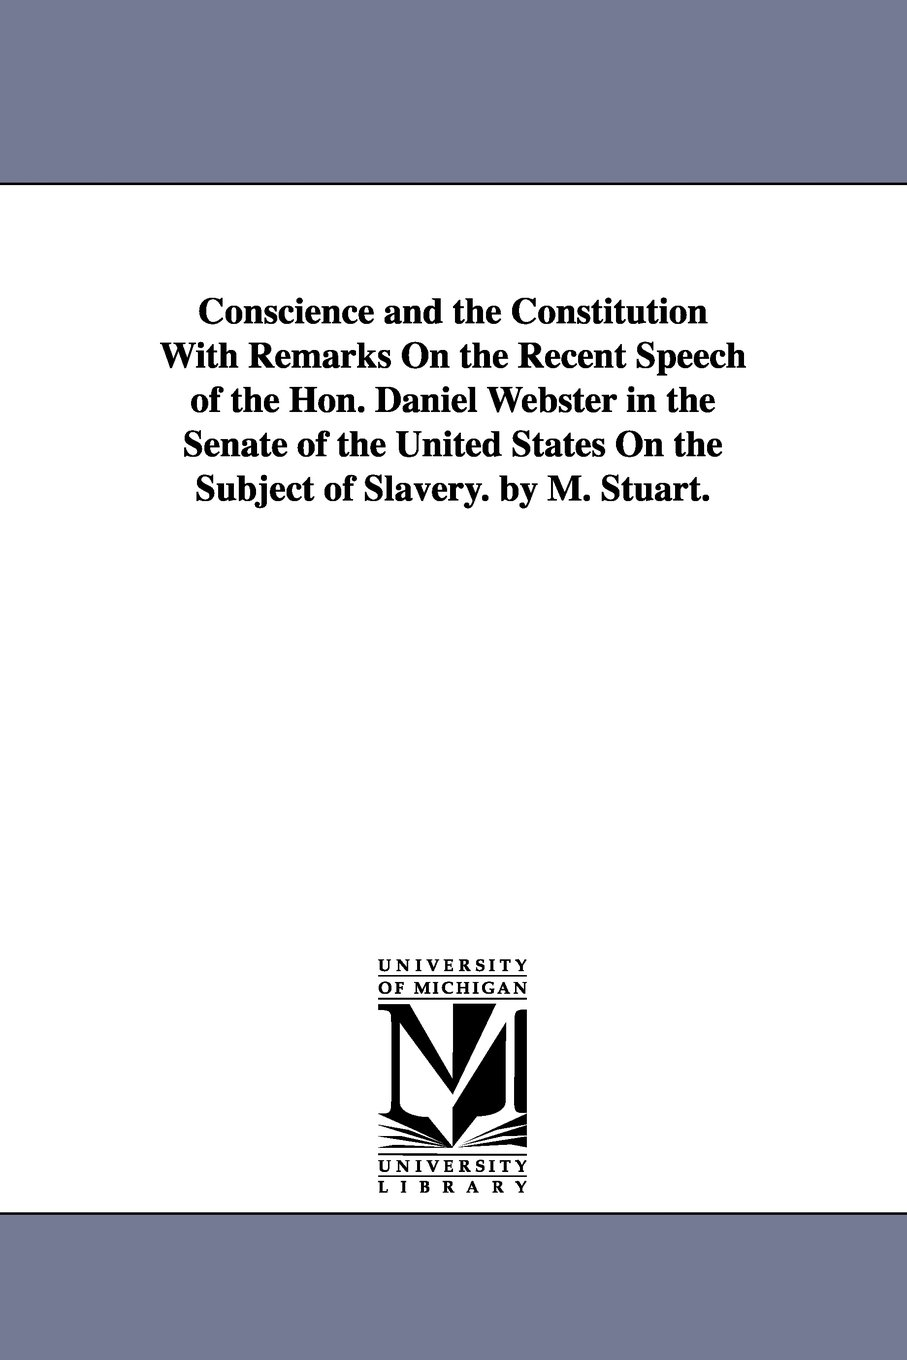 Conscience and the Constitution with remarks on the recent speech of the Hon. Daniel Webster in the Senate of the United States on the subject of slavery. By M. Stuart. pdf